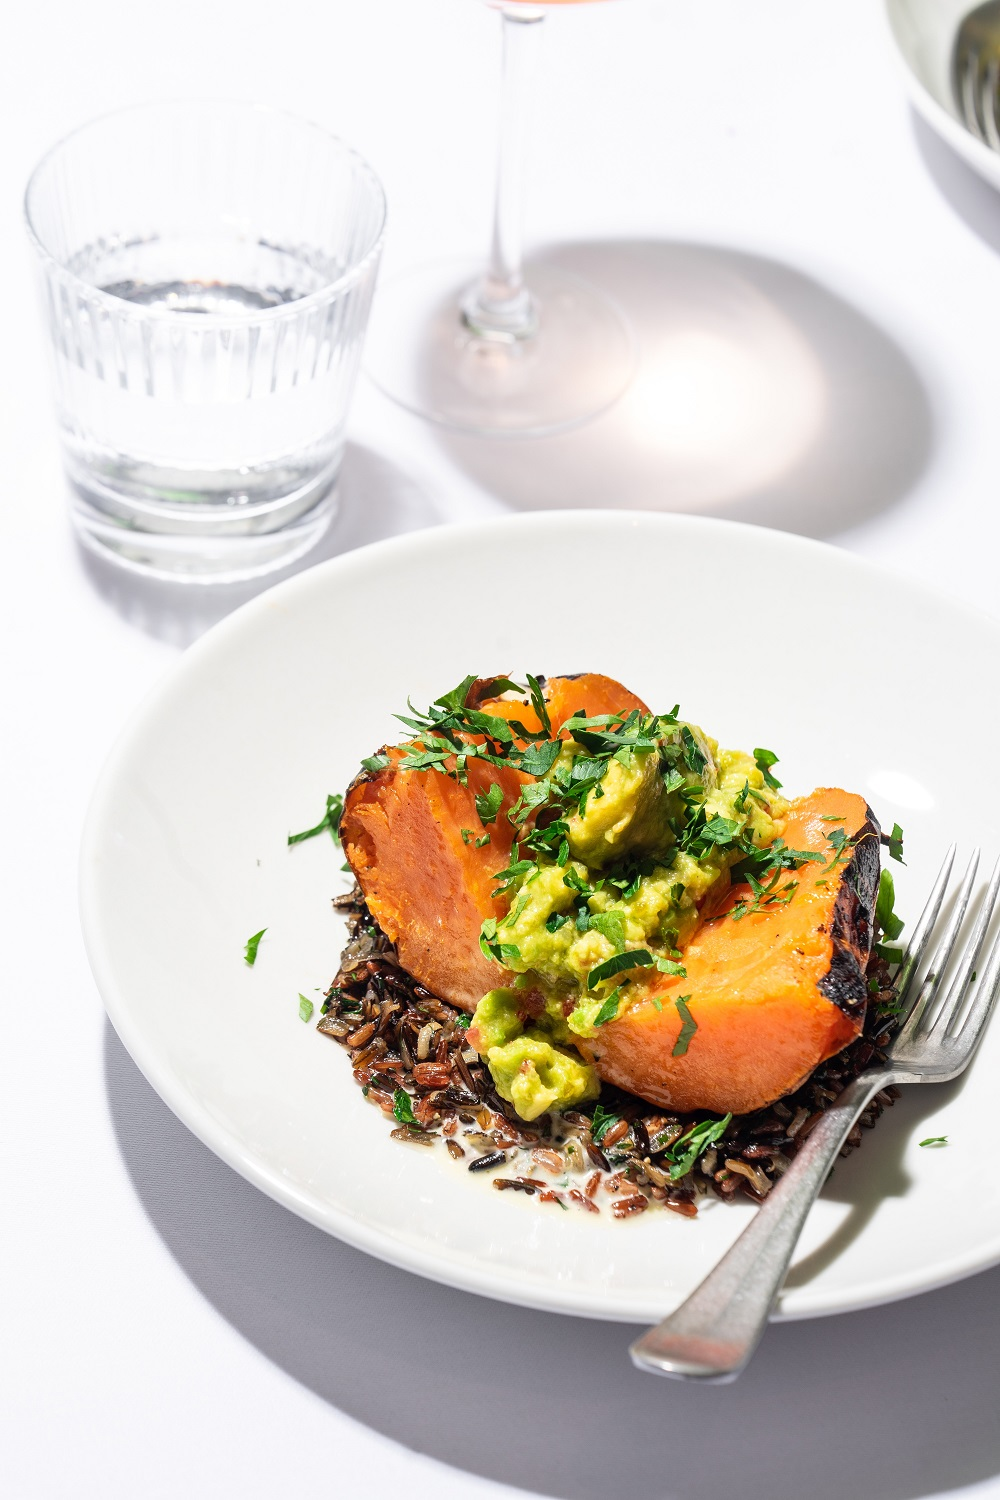 Sweet potatoes with avocado cream and wild rice